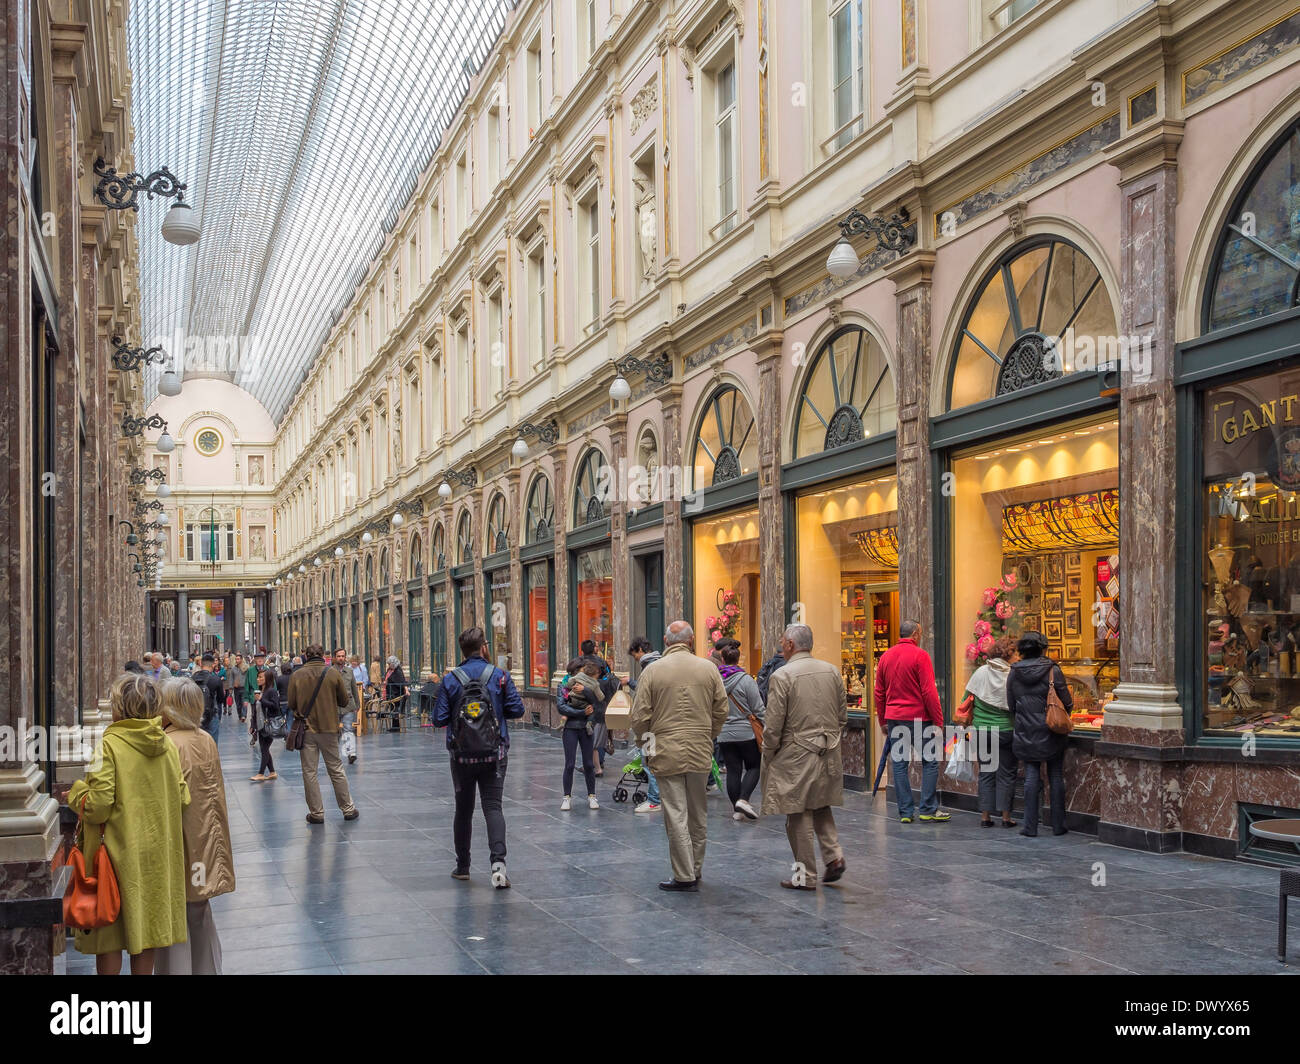 The Galeries Royales Saint-Hubert arcade in Brussels, Belgium. - Stock Image